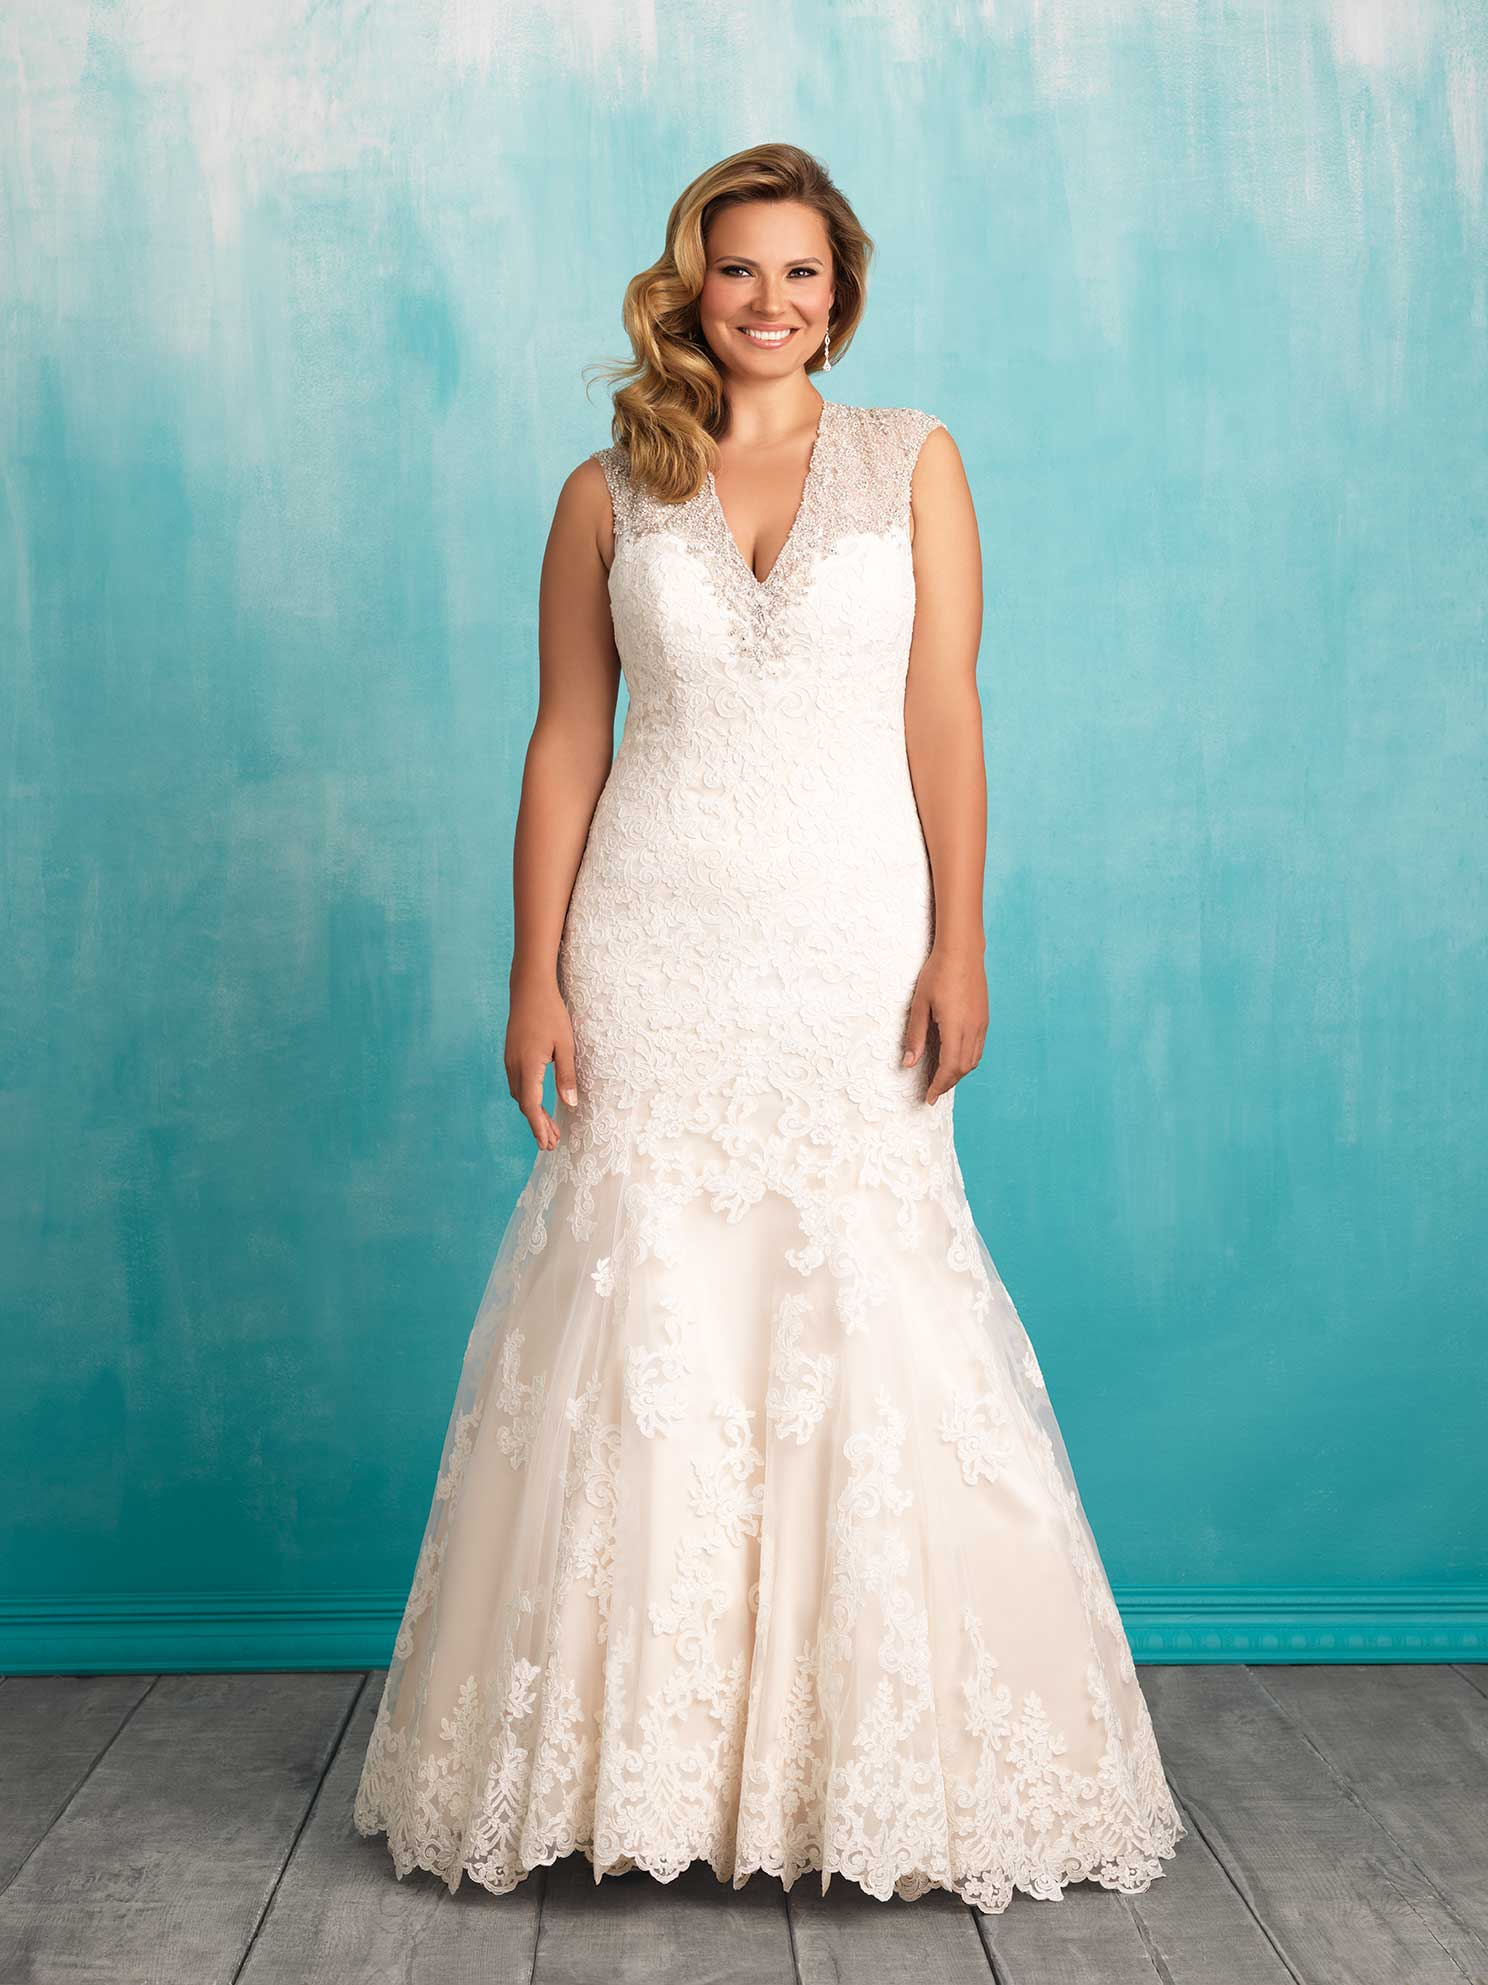 Bridal Dresses - Hitched Bridal And Formal Wear